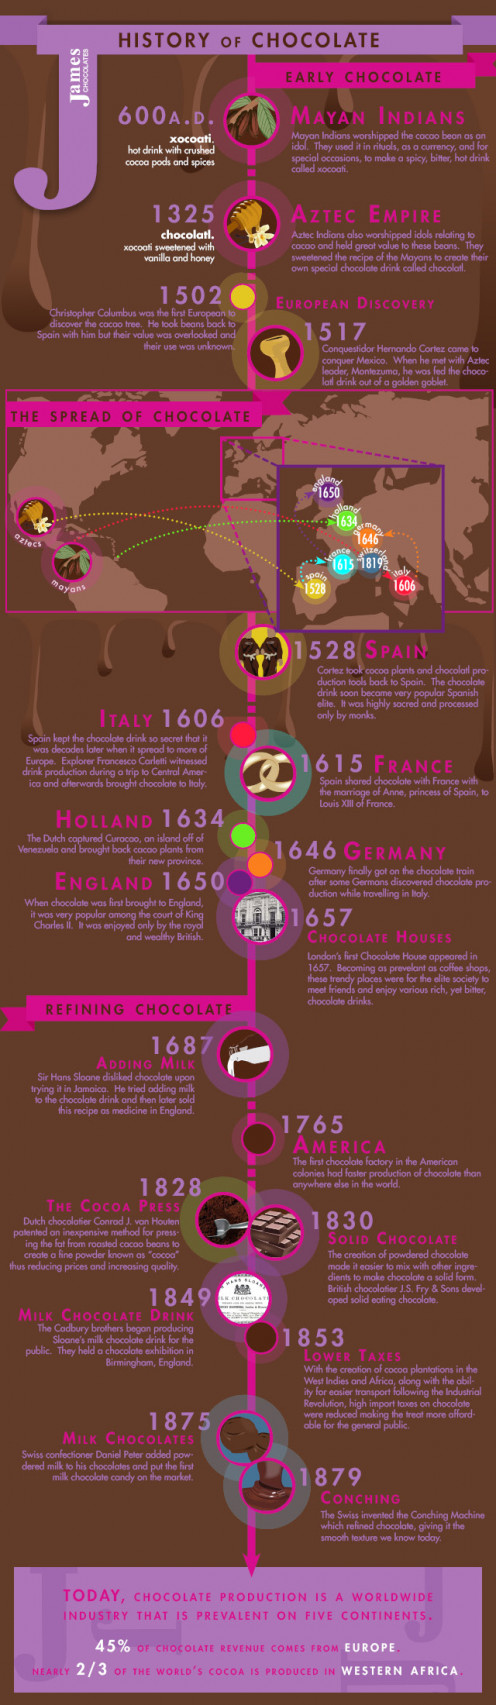 Timeline of history of chocolate